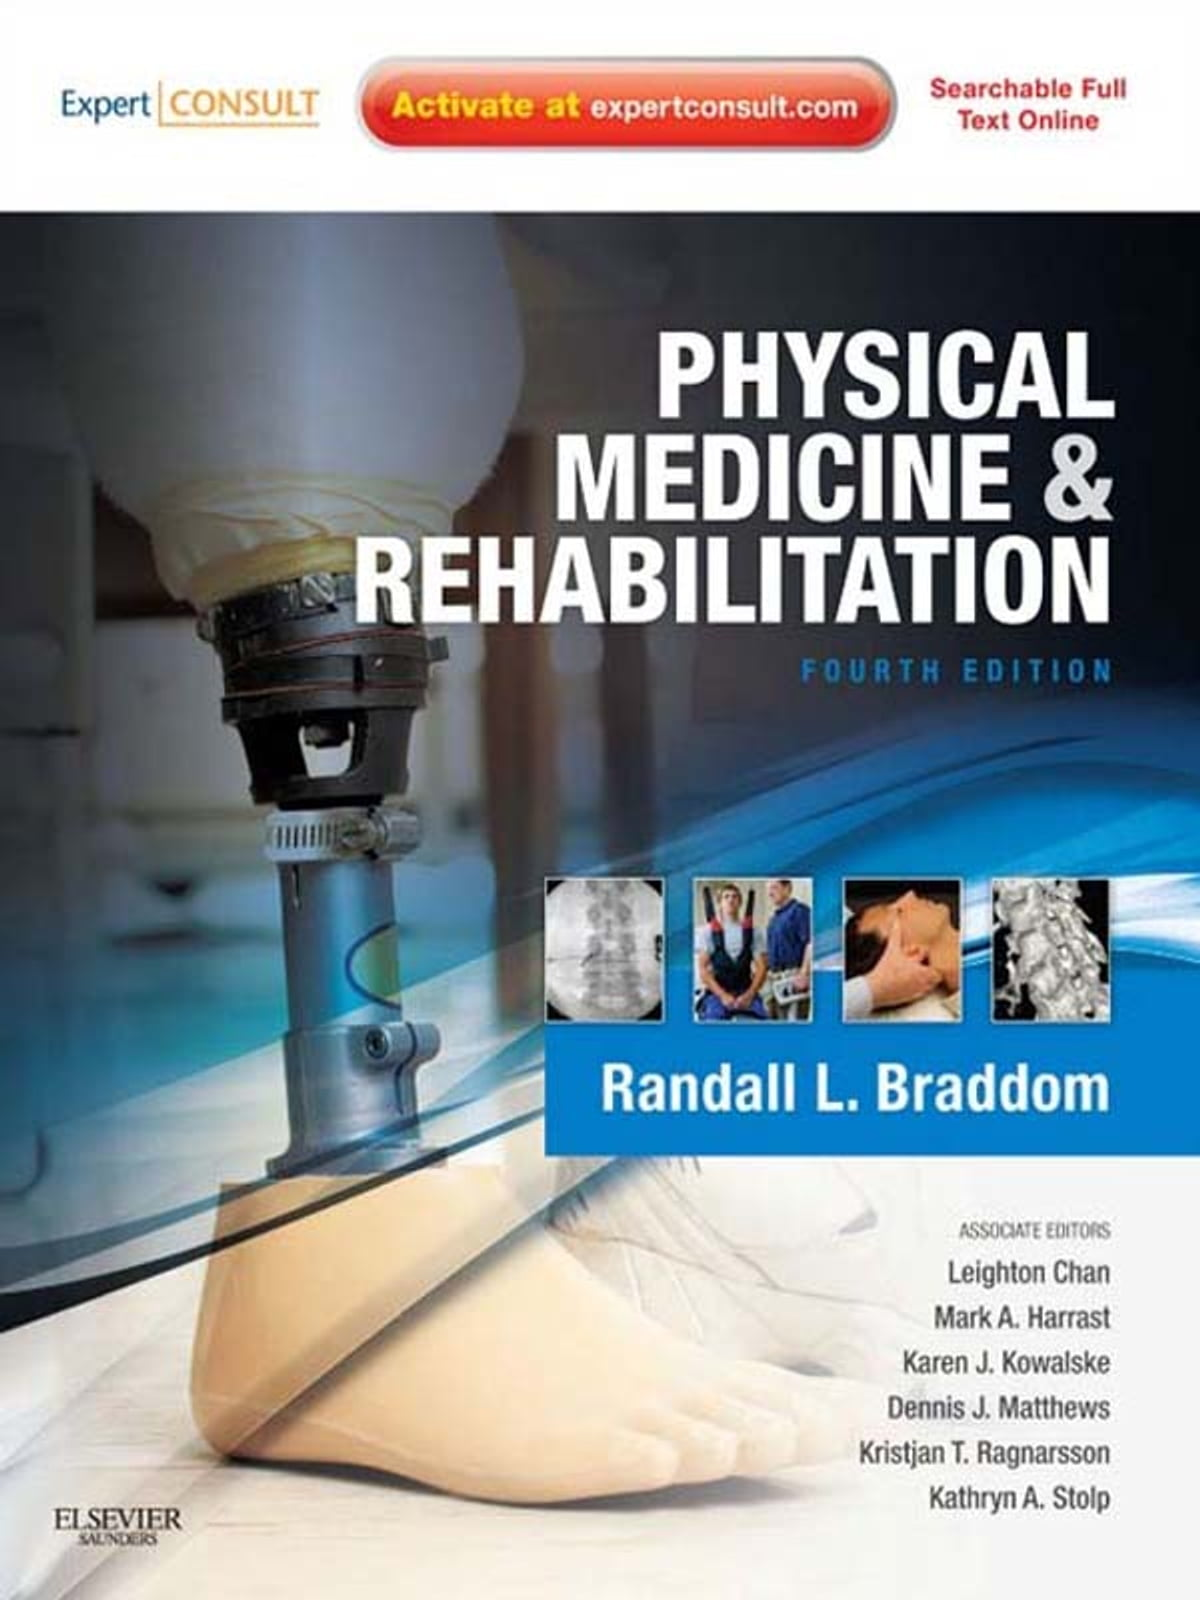 braddom 5th edition free download